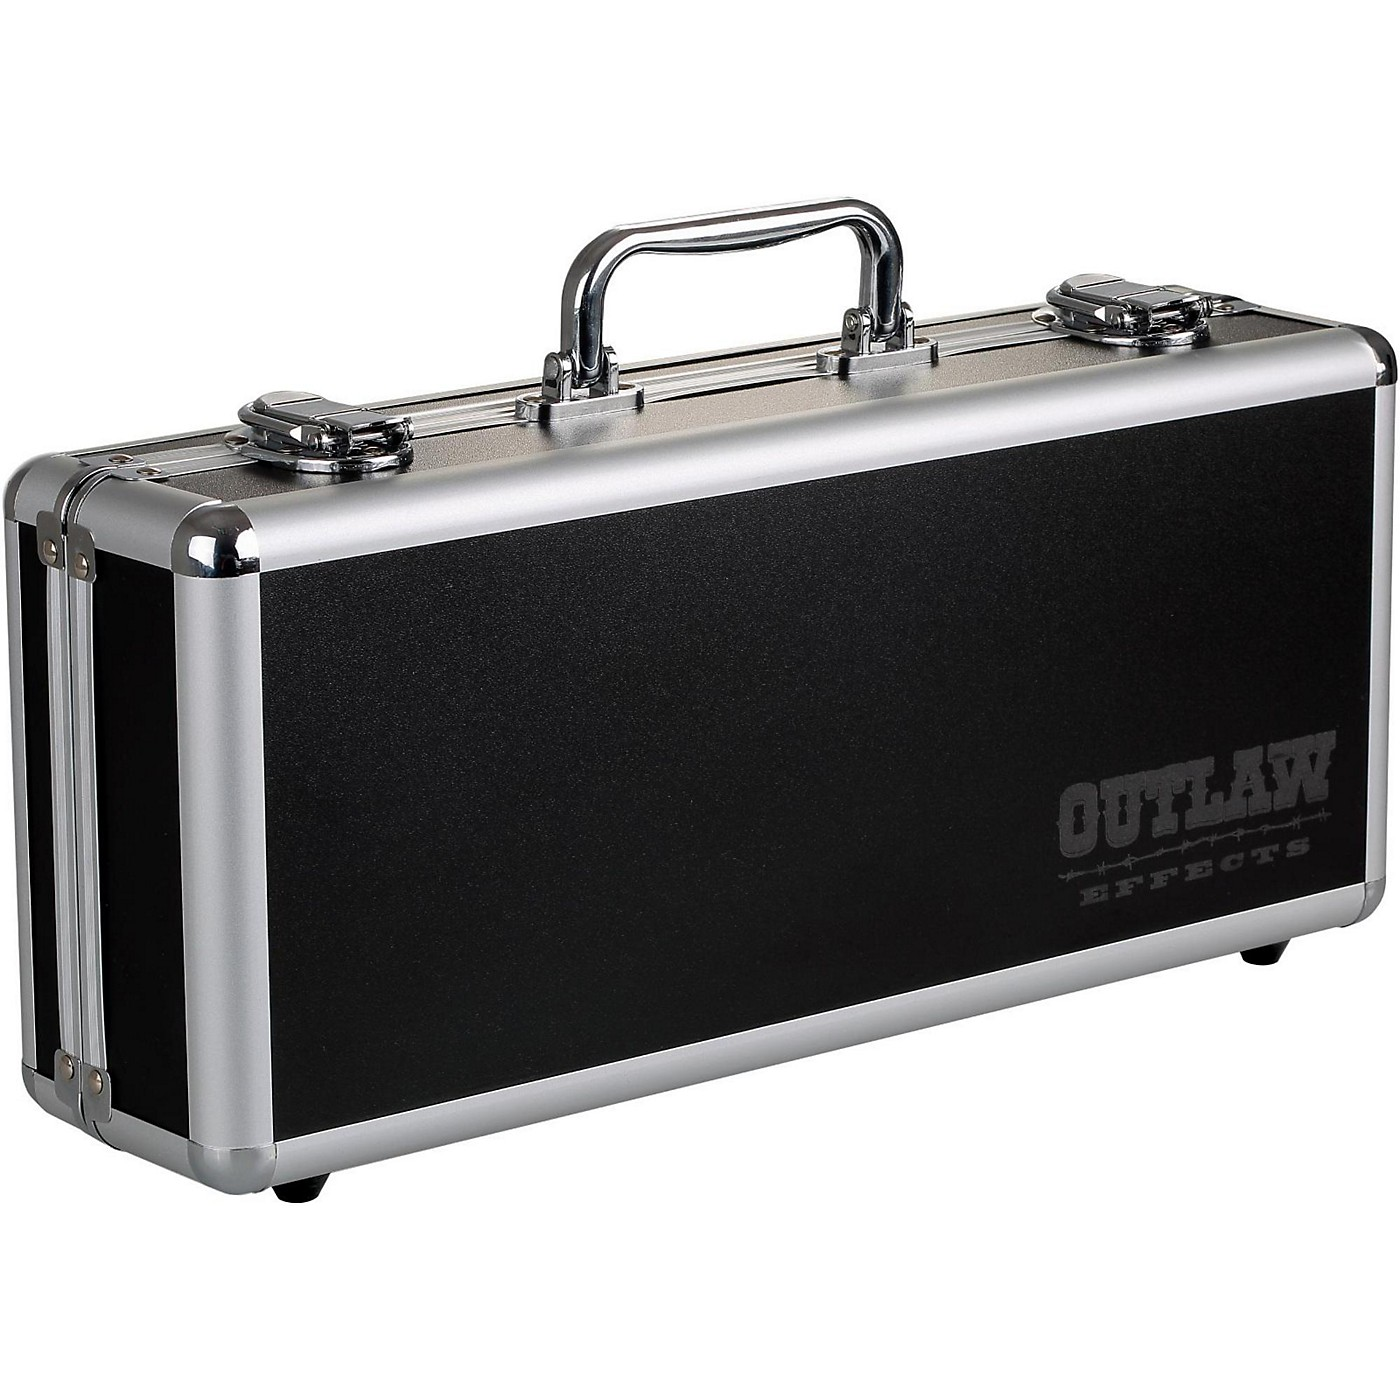 Outlaw Effects Case with Power thumbnail